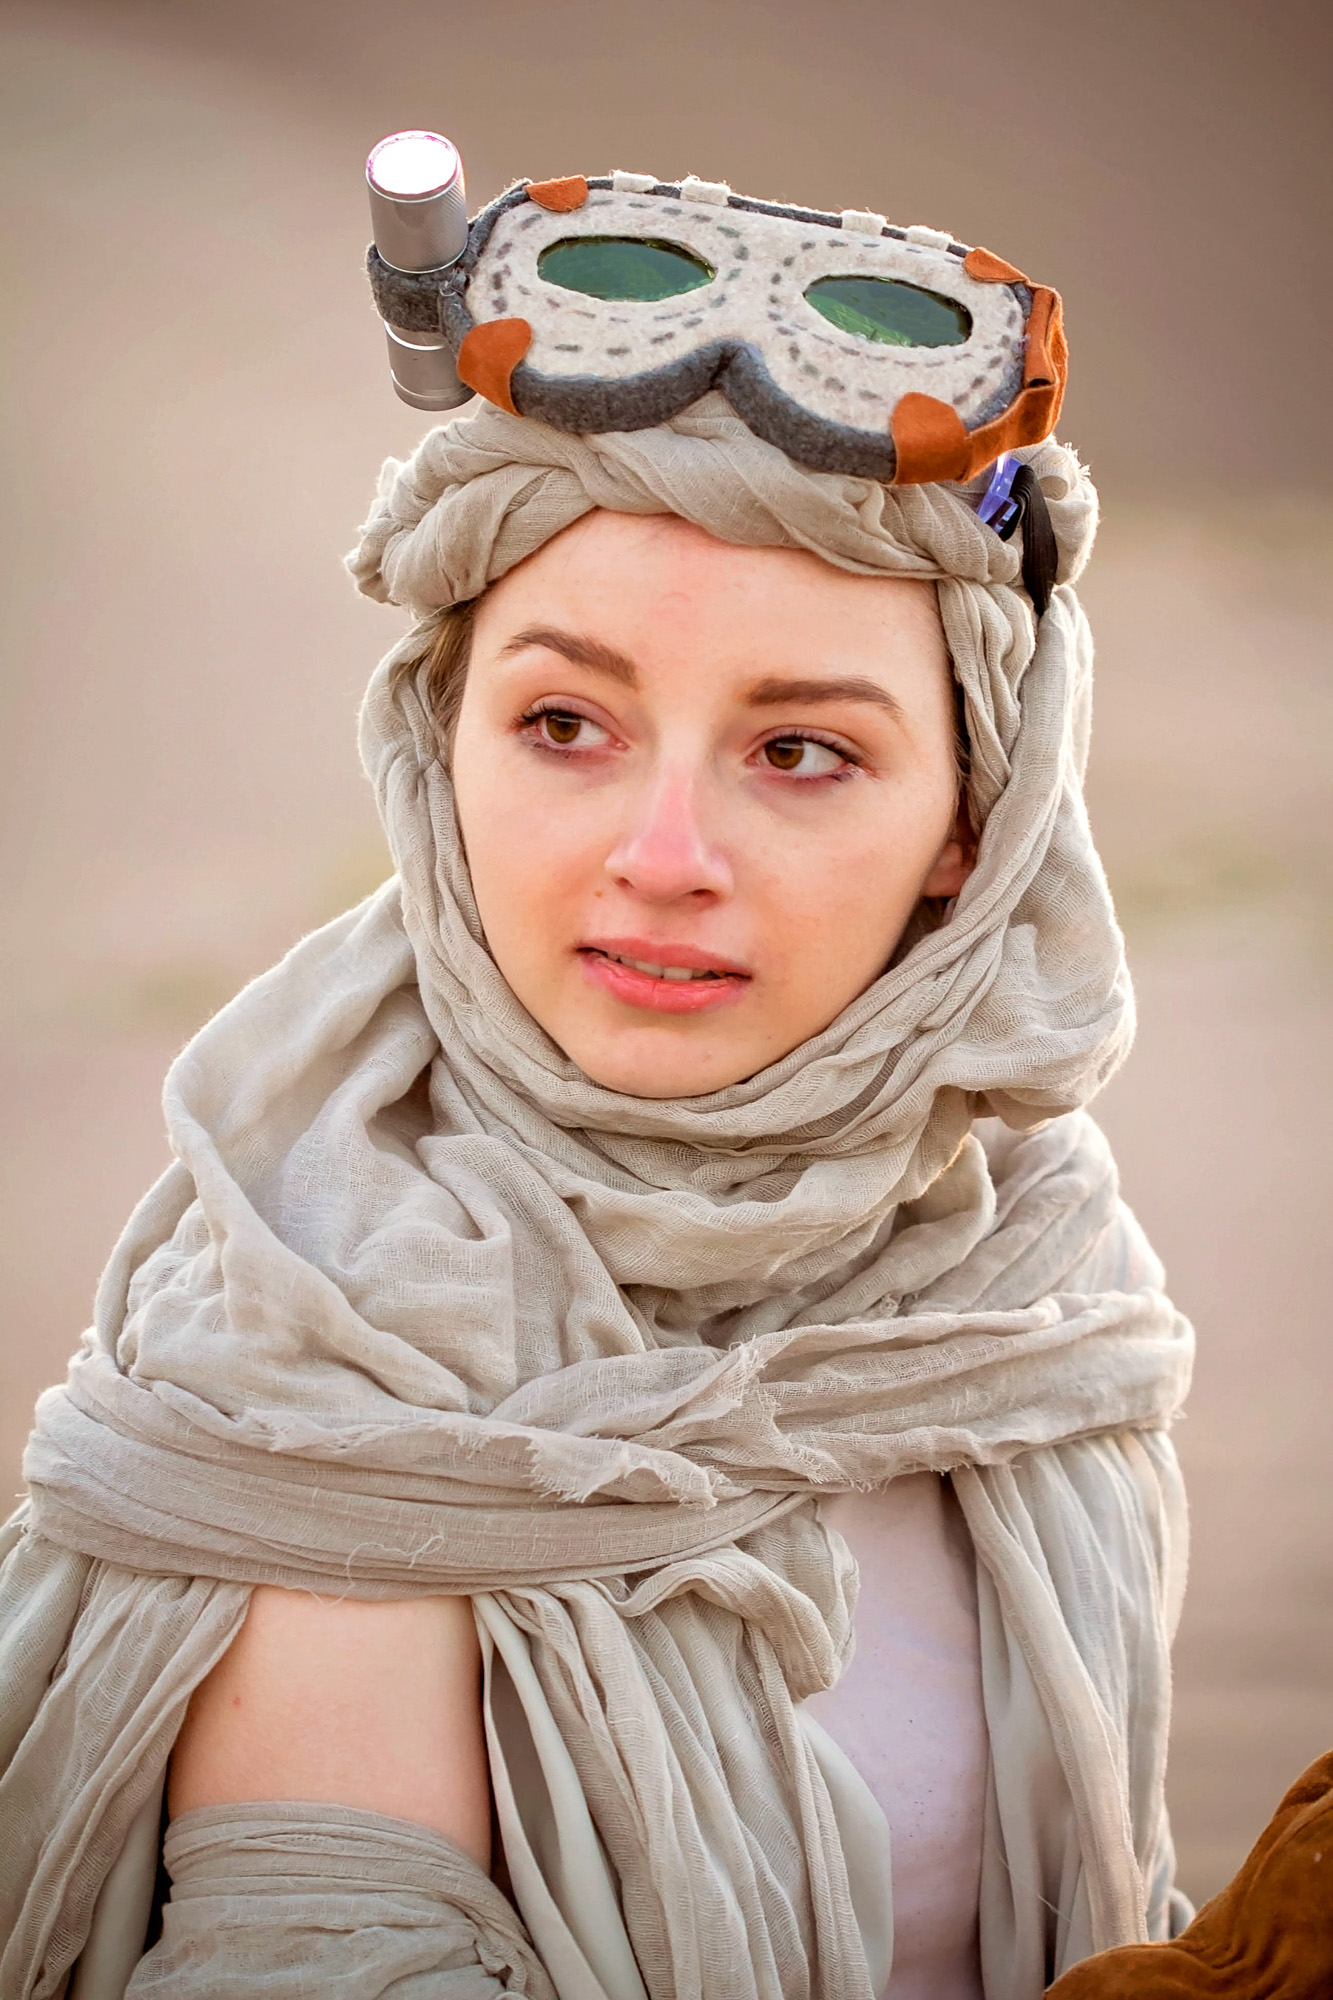 Jessica Stone Photography StarWars Styled Portrait Session -109.jpg